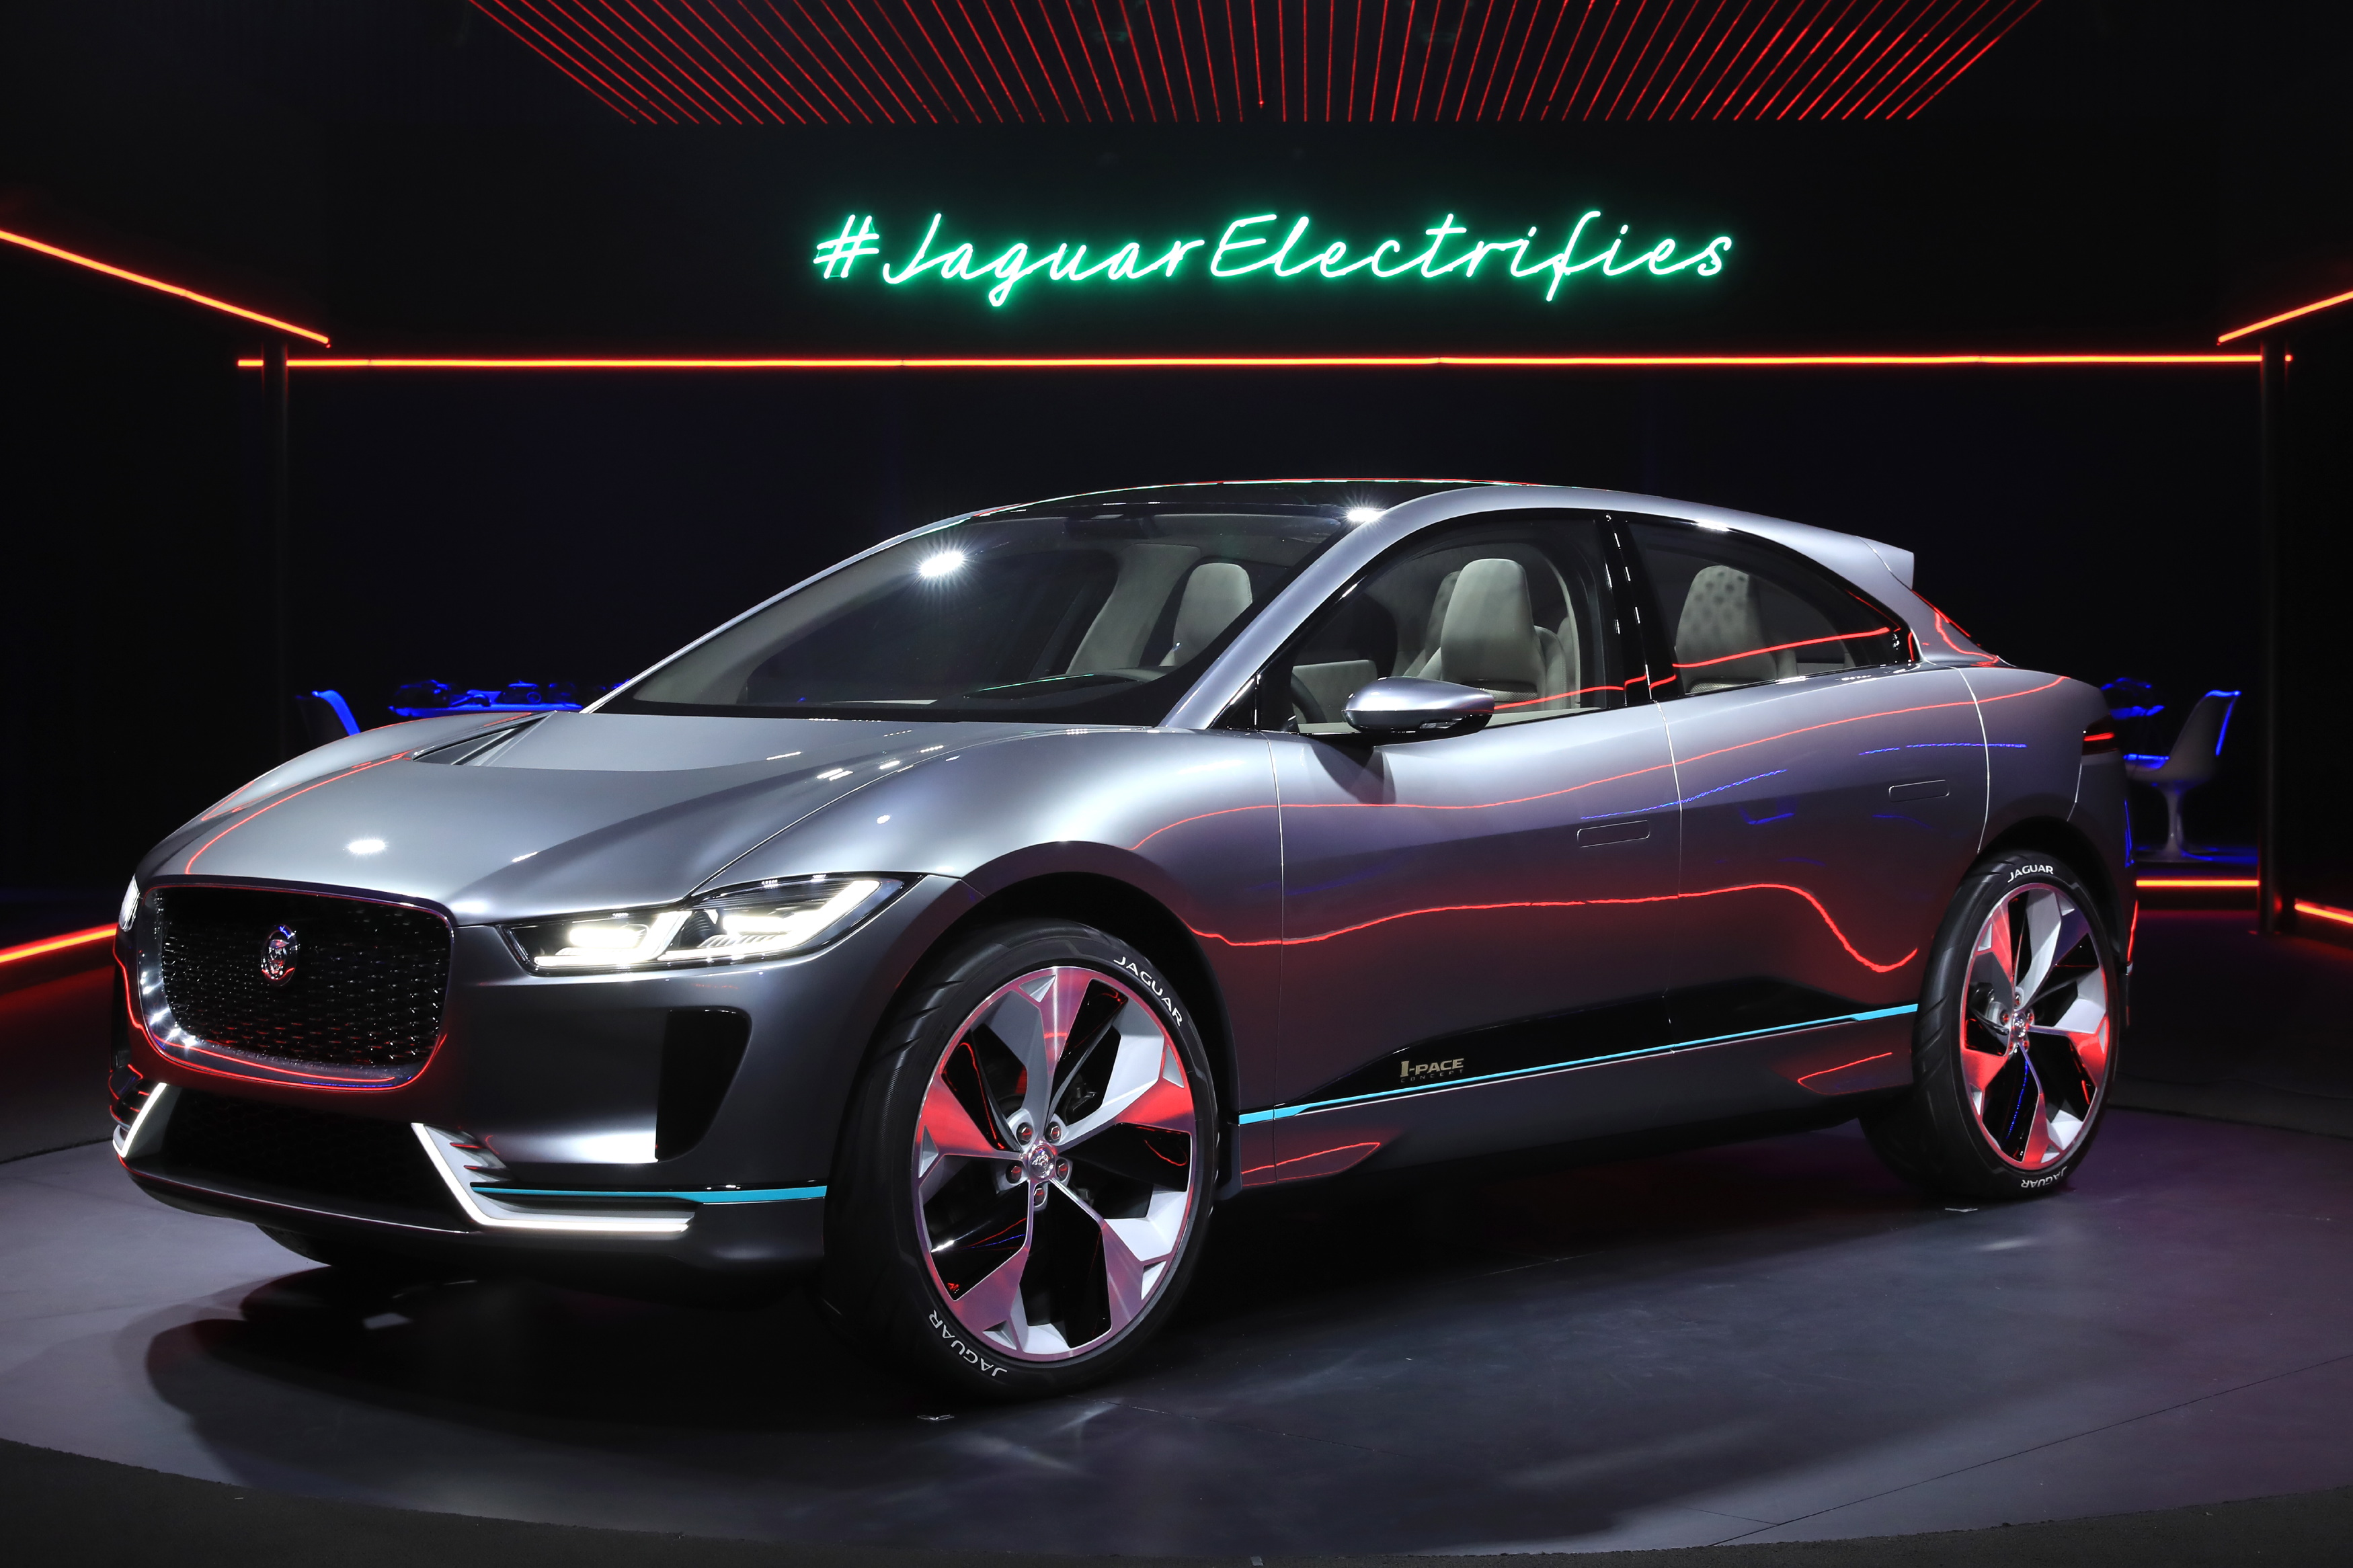 Jaguar S Engineering And Design Teams Have Torn Up The Rule Book To Create A Bespoke Electric Architecture Matched With Dramatic